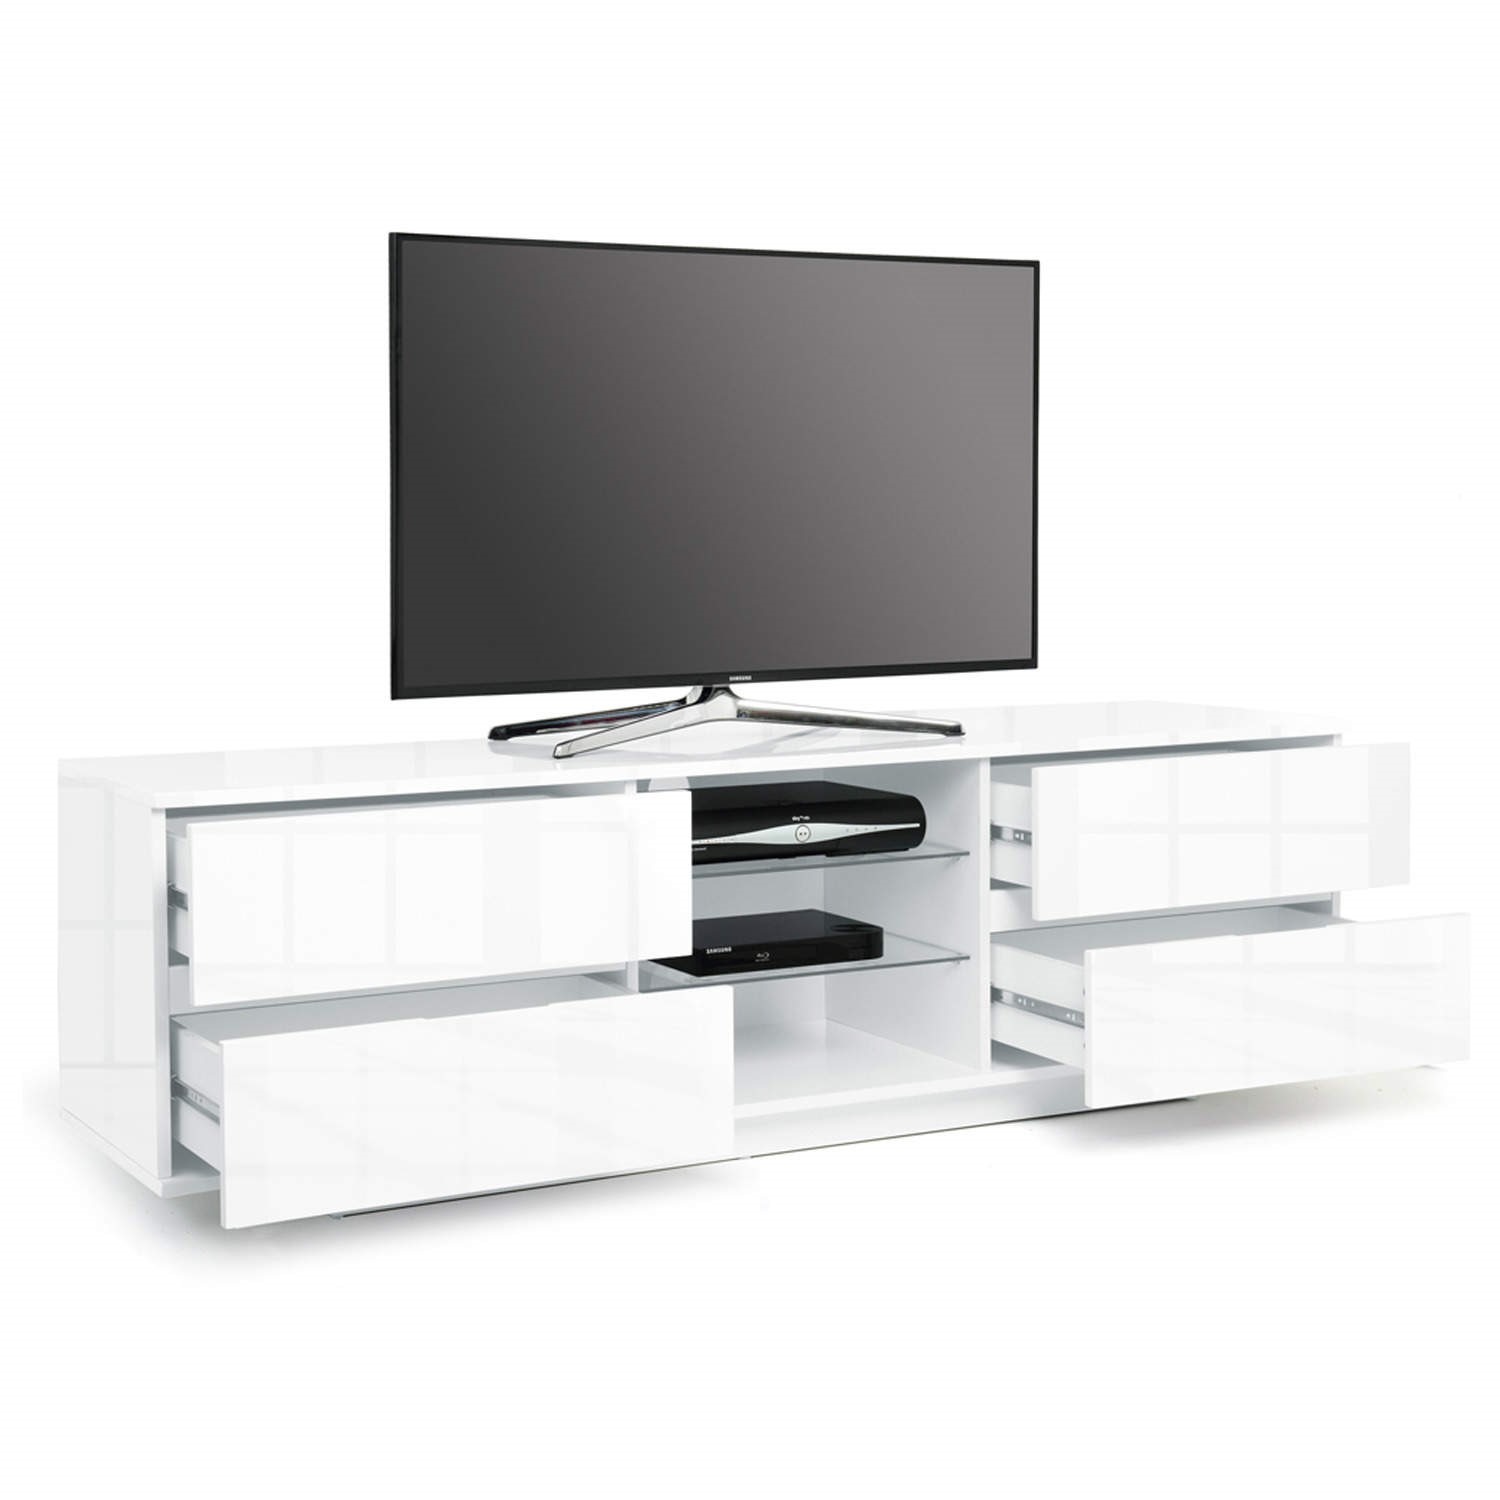 Mda Designs Avitus Tv Cabinet In White High Gloss Up To 65 Inch Laptops Direct